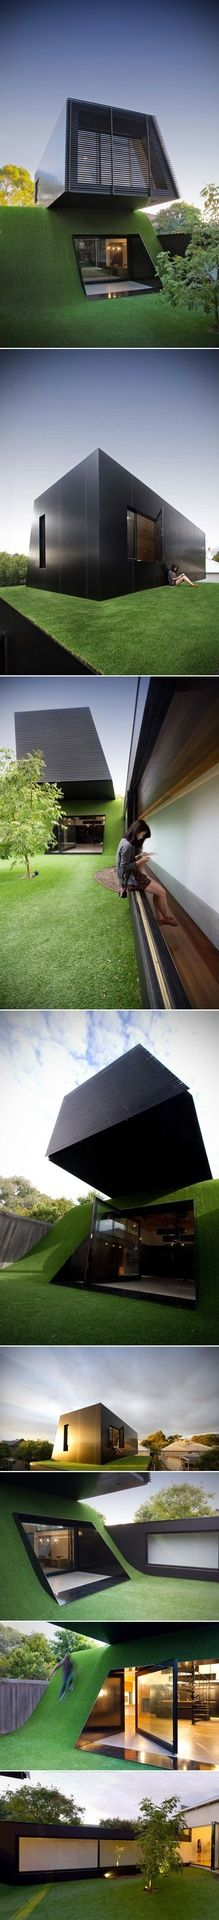 "Hill House by architect Andrew Maynard nice infographic Sublime accommodation in Melbourne by Andrew Maynard The week begins with this very big favorite architecture. This house called ""Hill House"" is..."